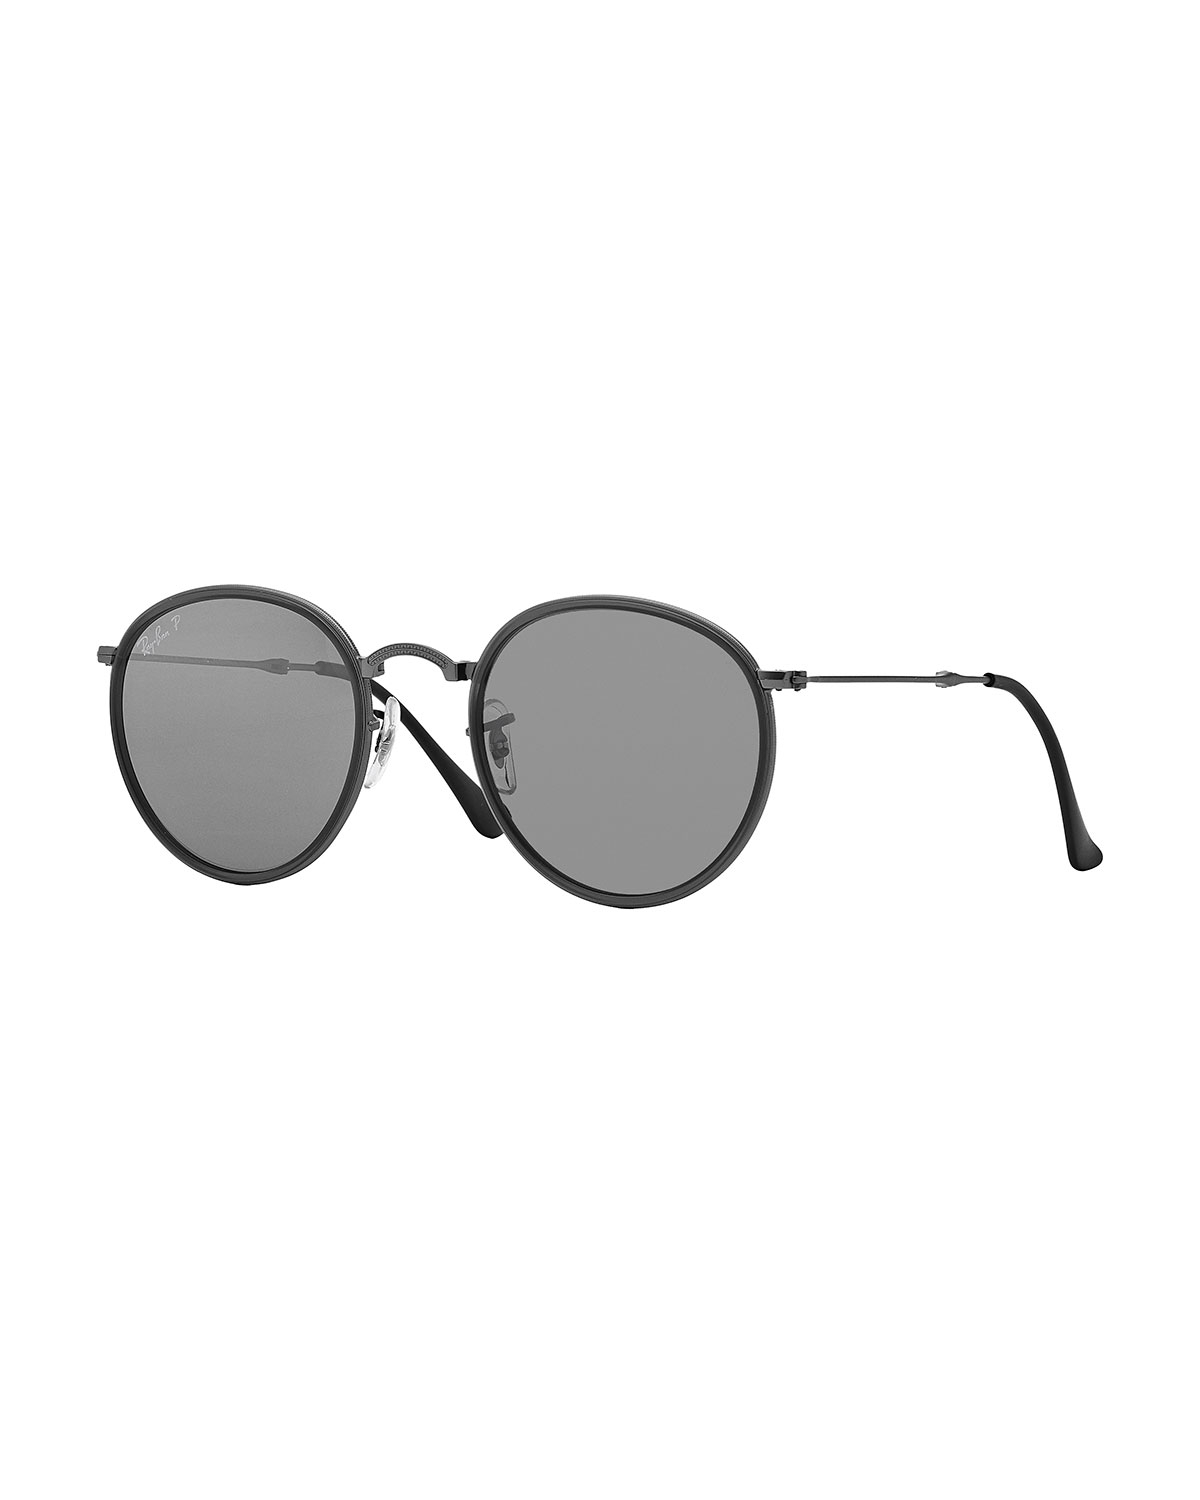 ray ban round metal sunglasses in gray lyst. Black Bedroom Furniture Sets. Home Design Ideas